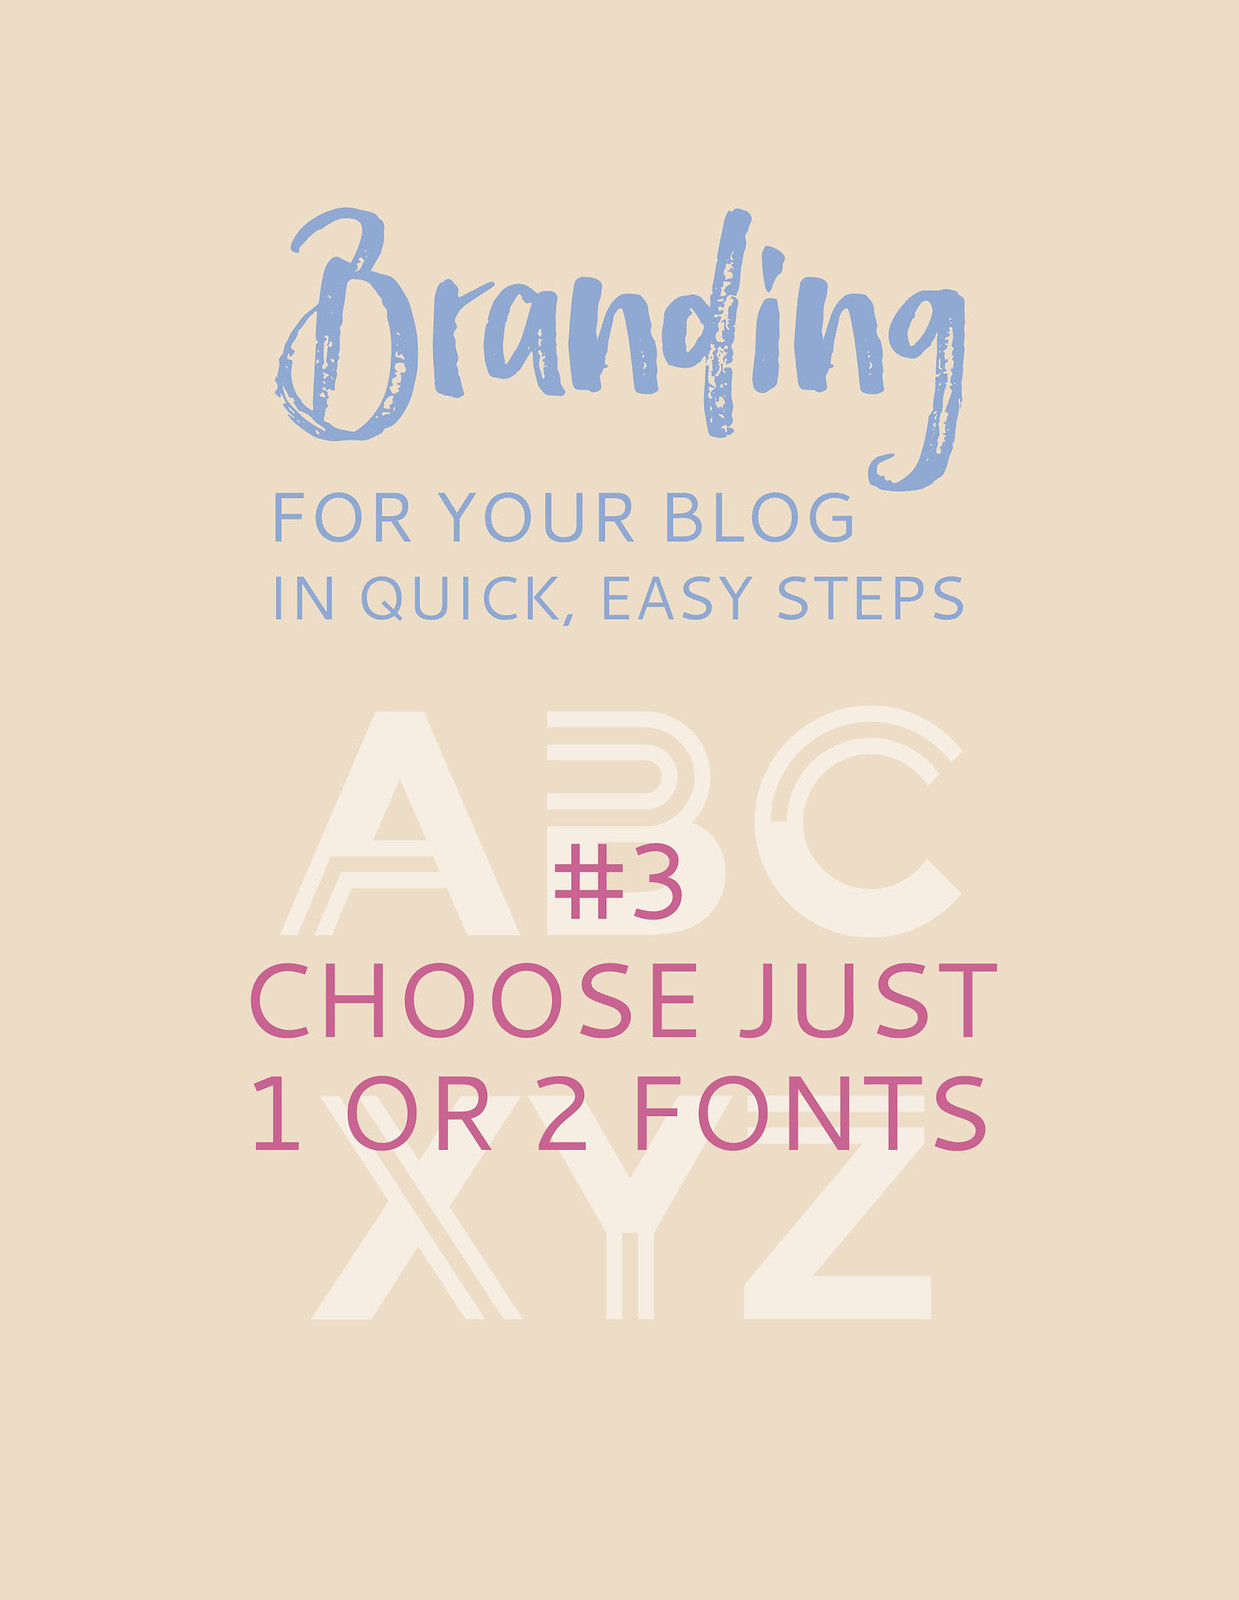 Blogging Tips | Branding For Your Blog in Quick, Easy Steps: 3. Choose Just 1 (or 2) Fonts